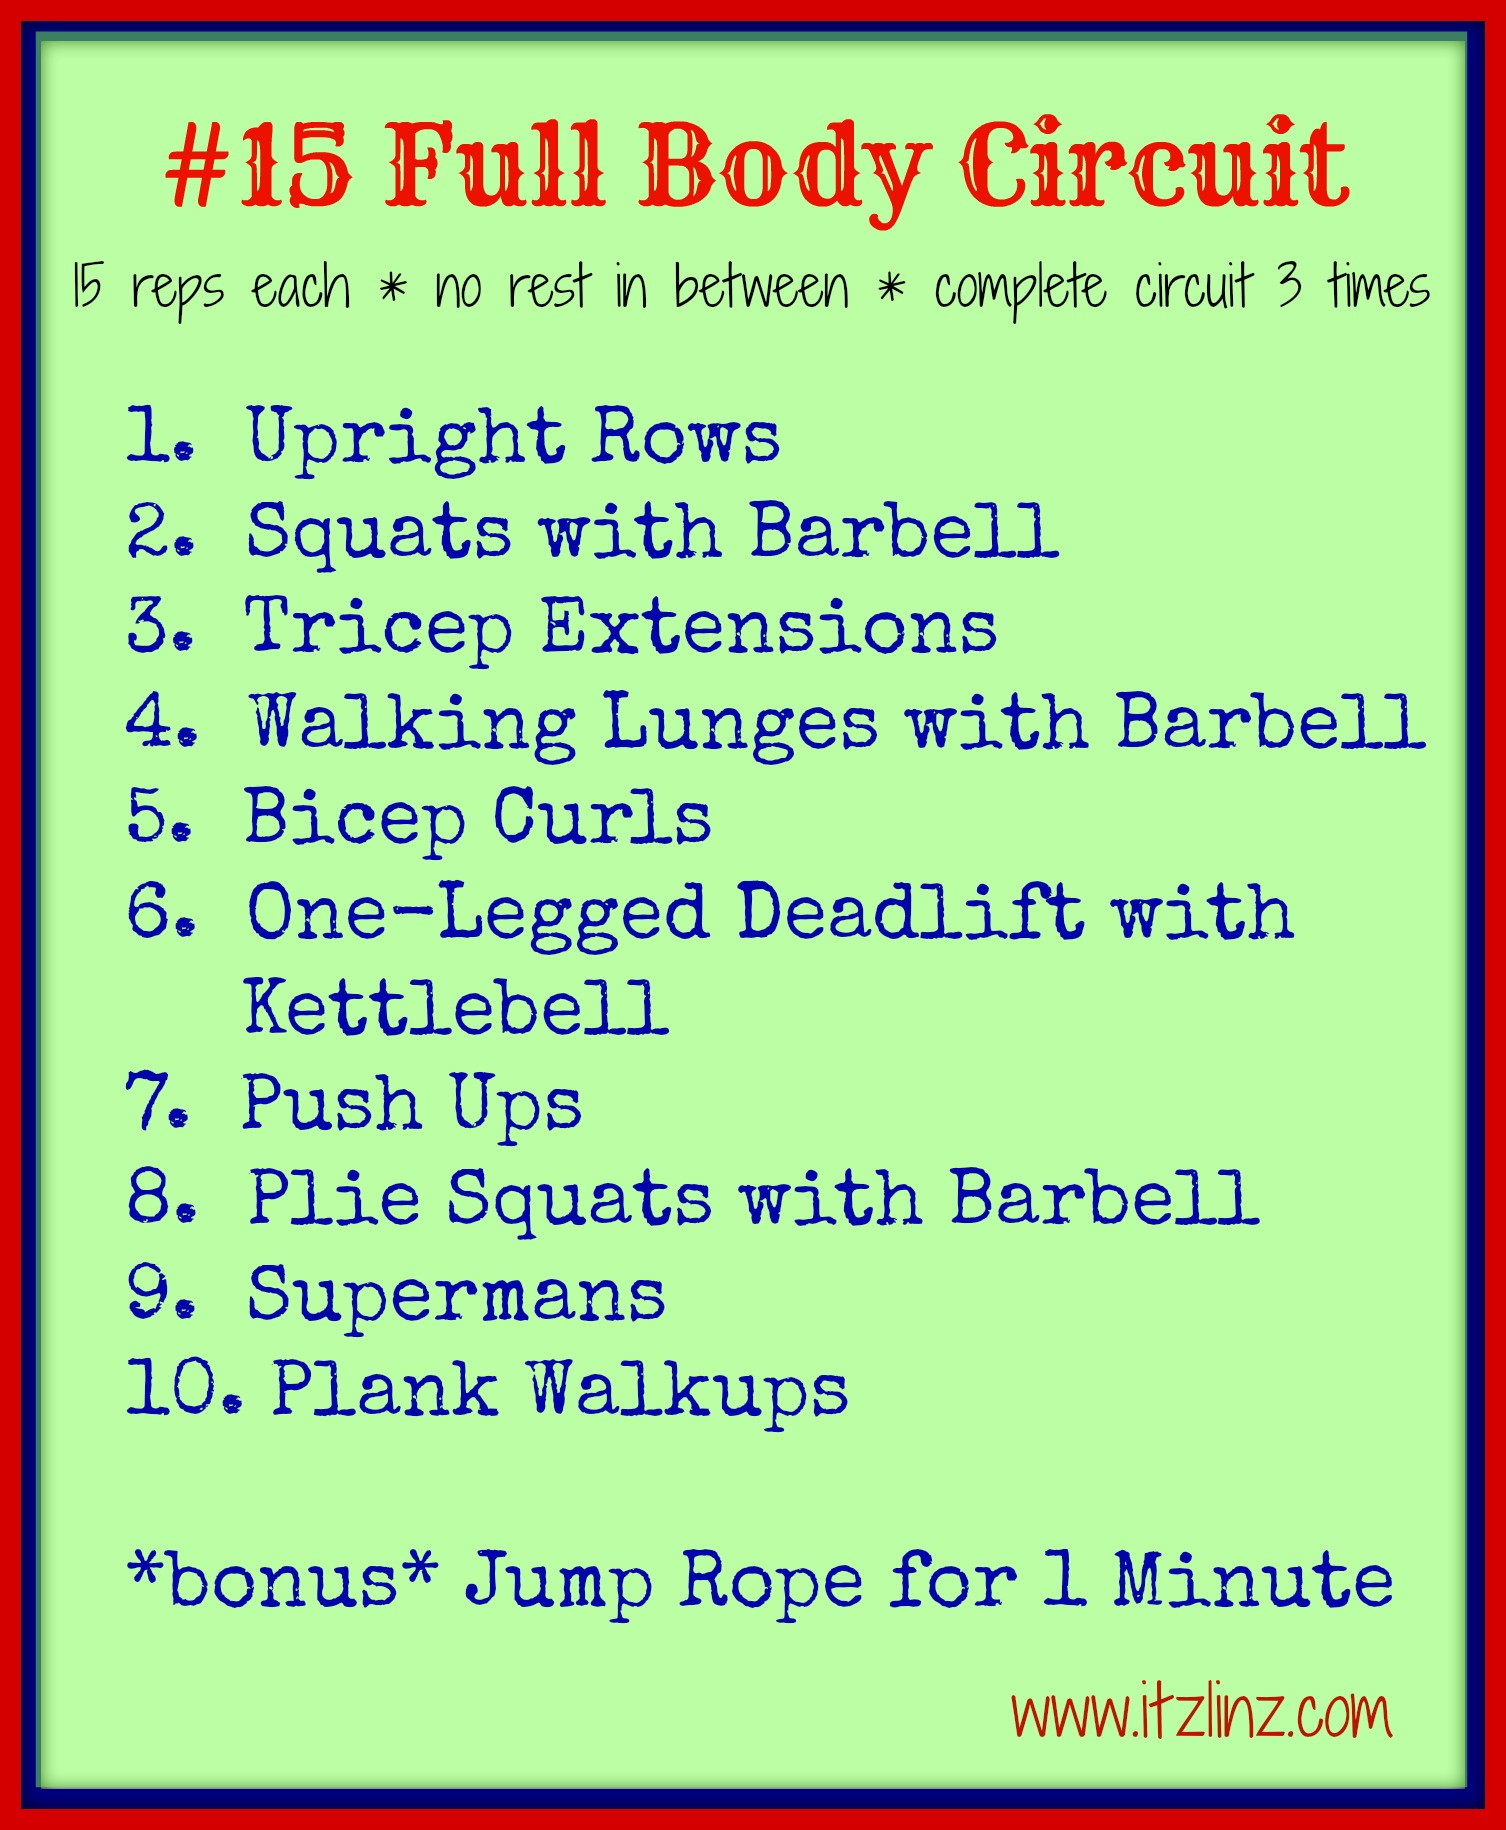 #15 Full Body Circuit